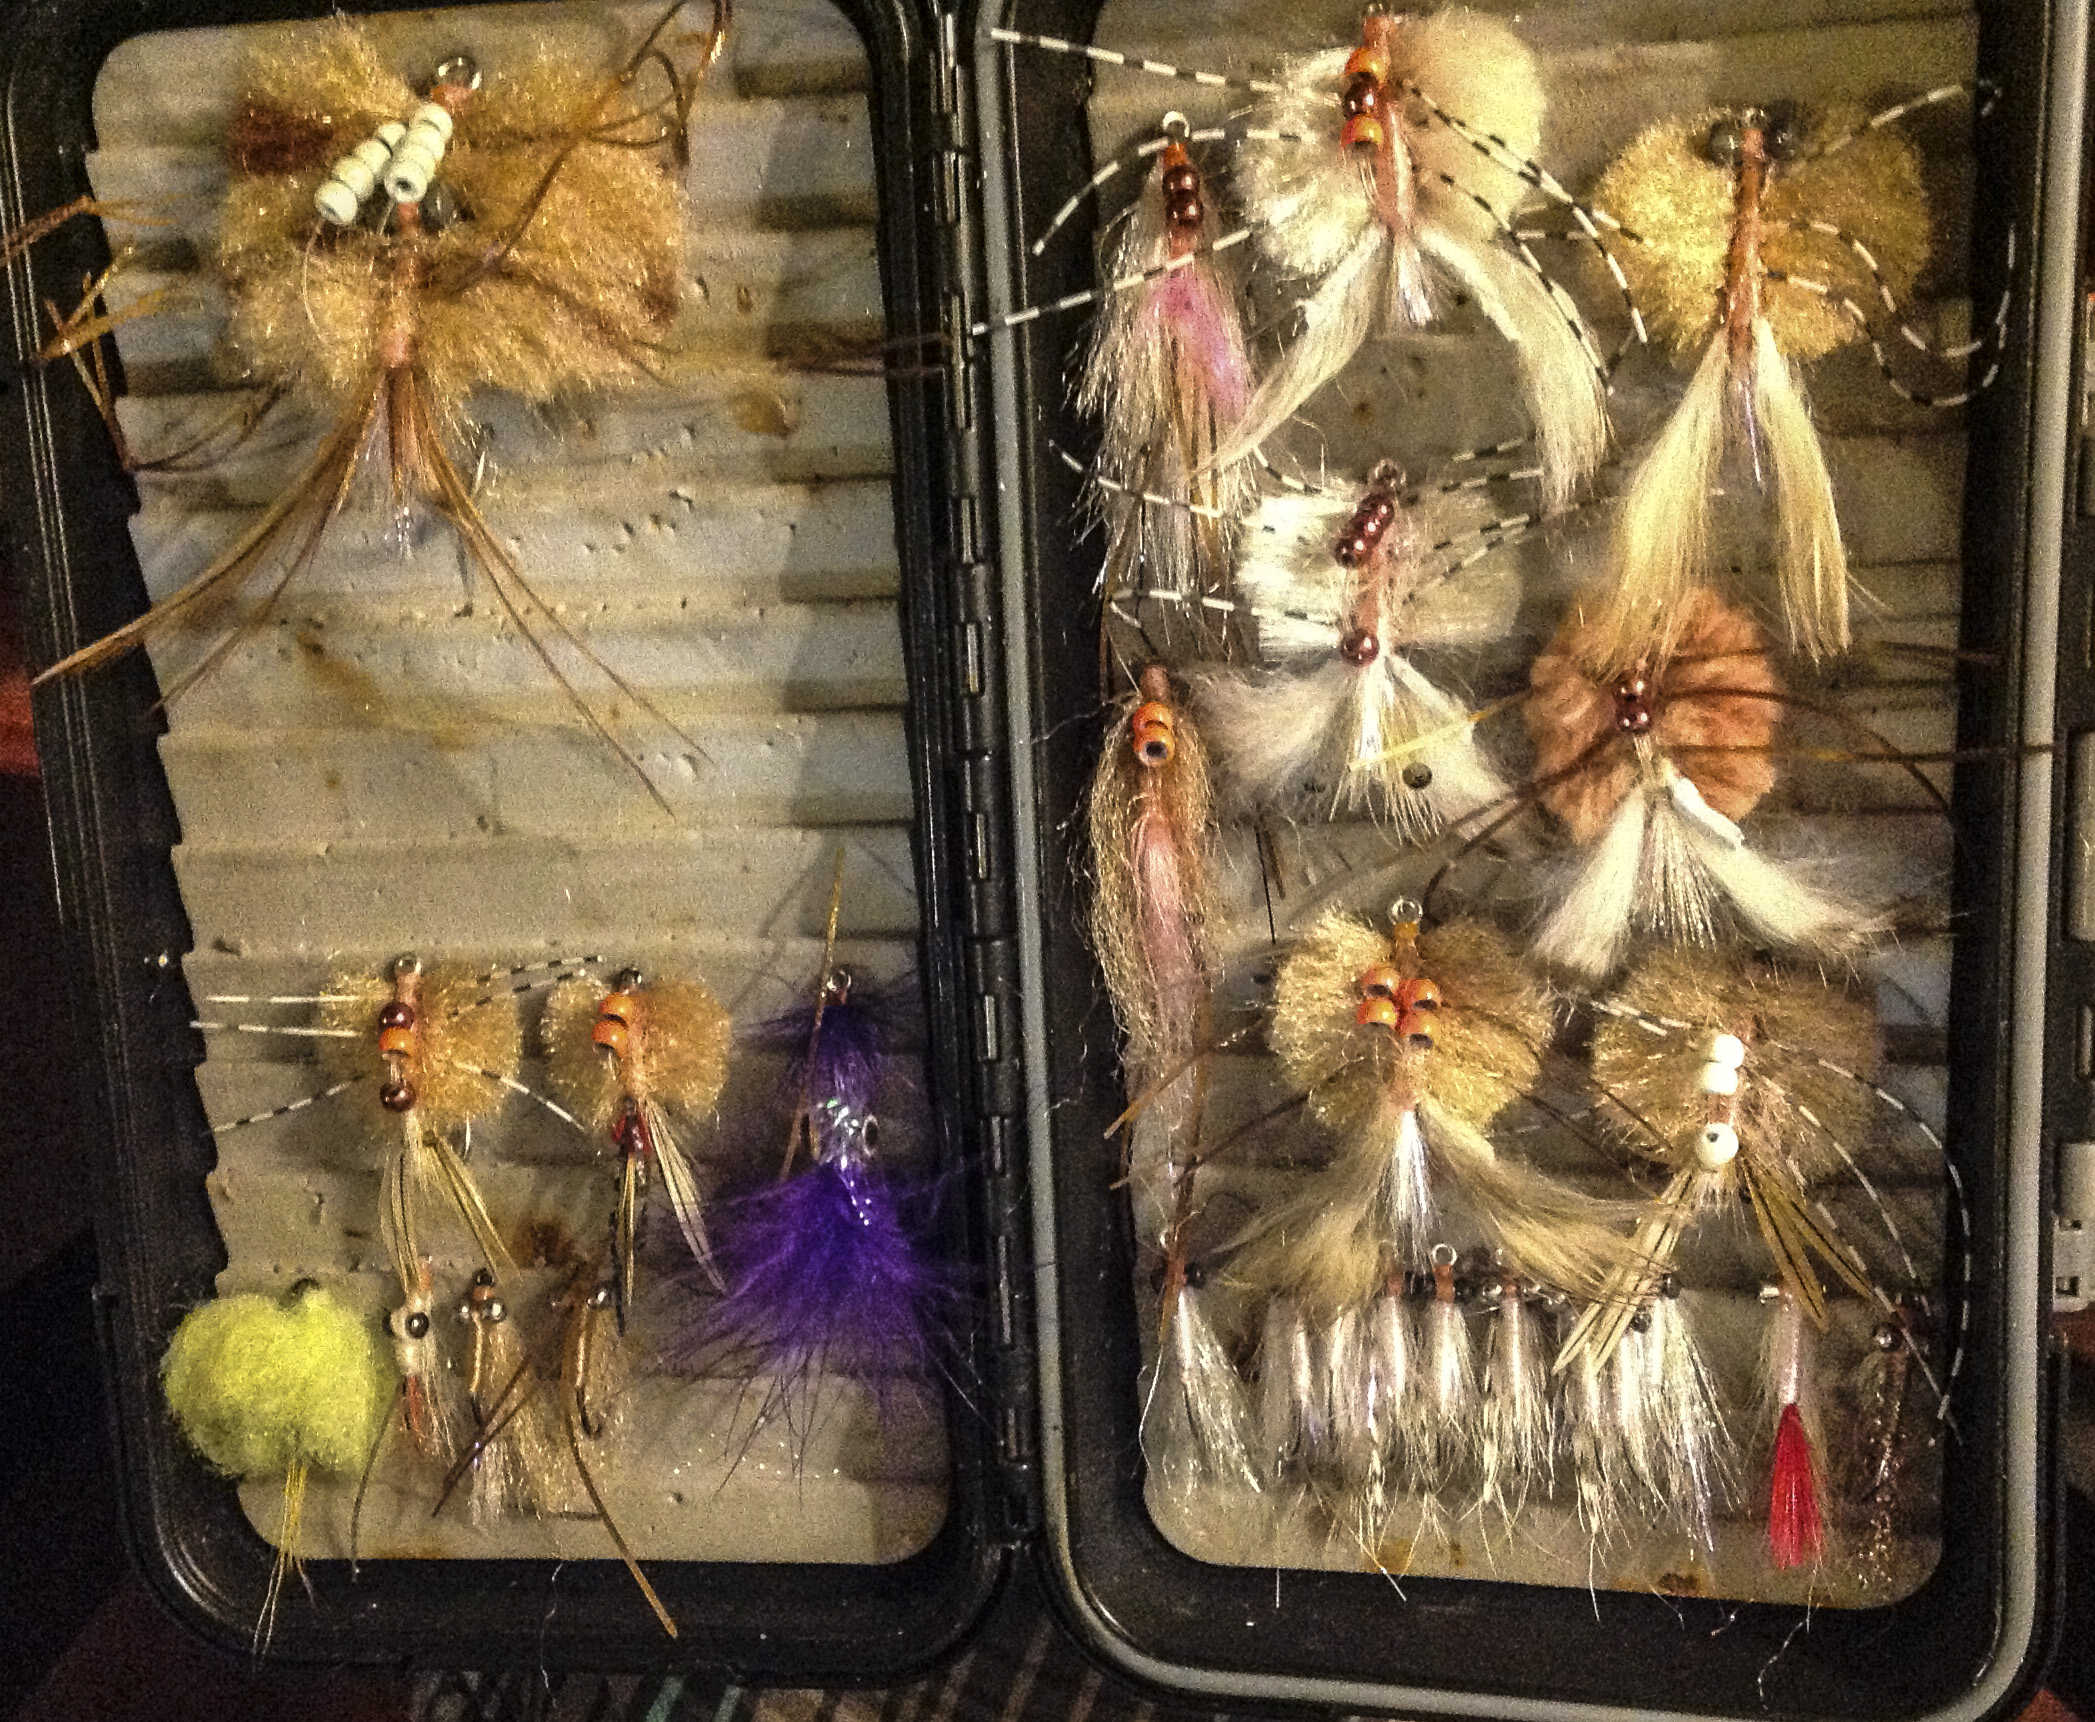 My current flats box. Minimal Charlies and lots of crabs - there were even more in the big box at base.